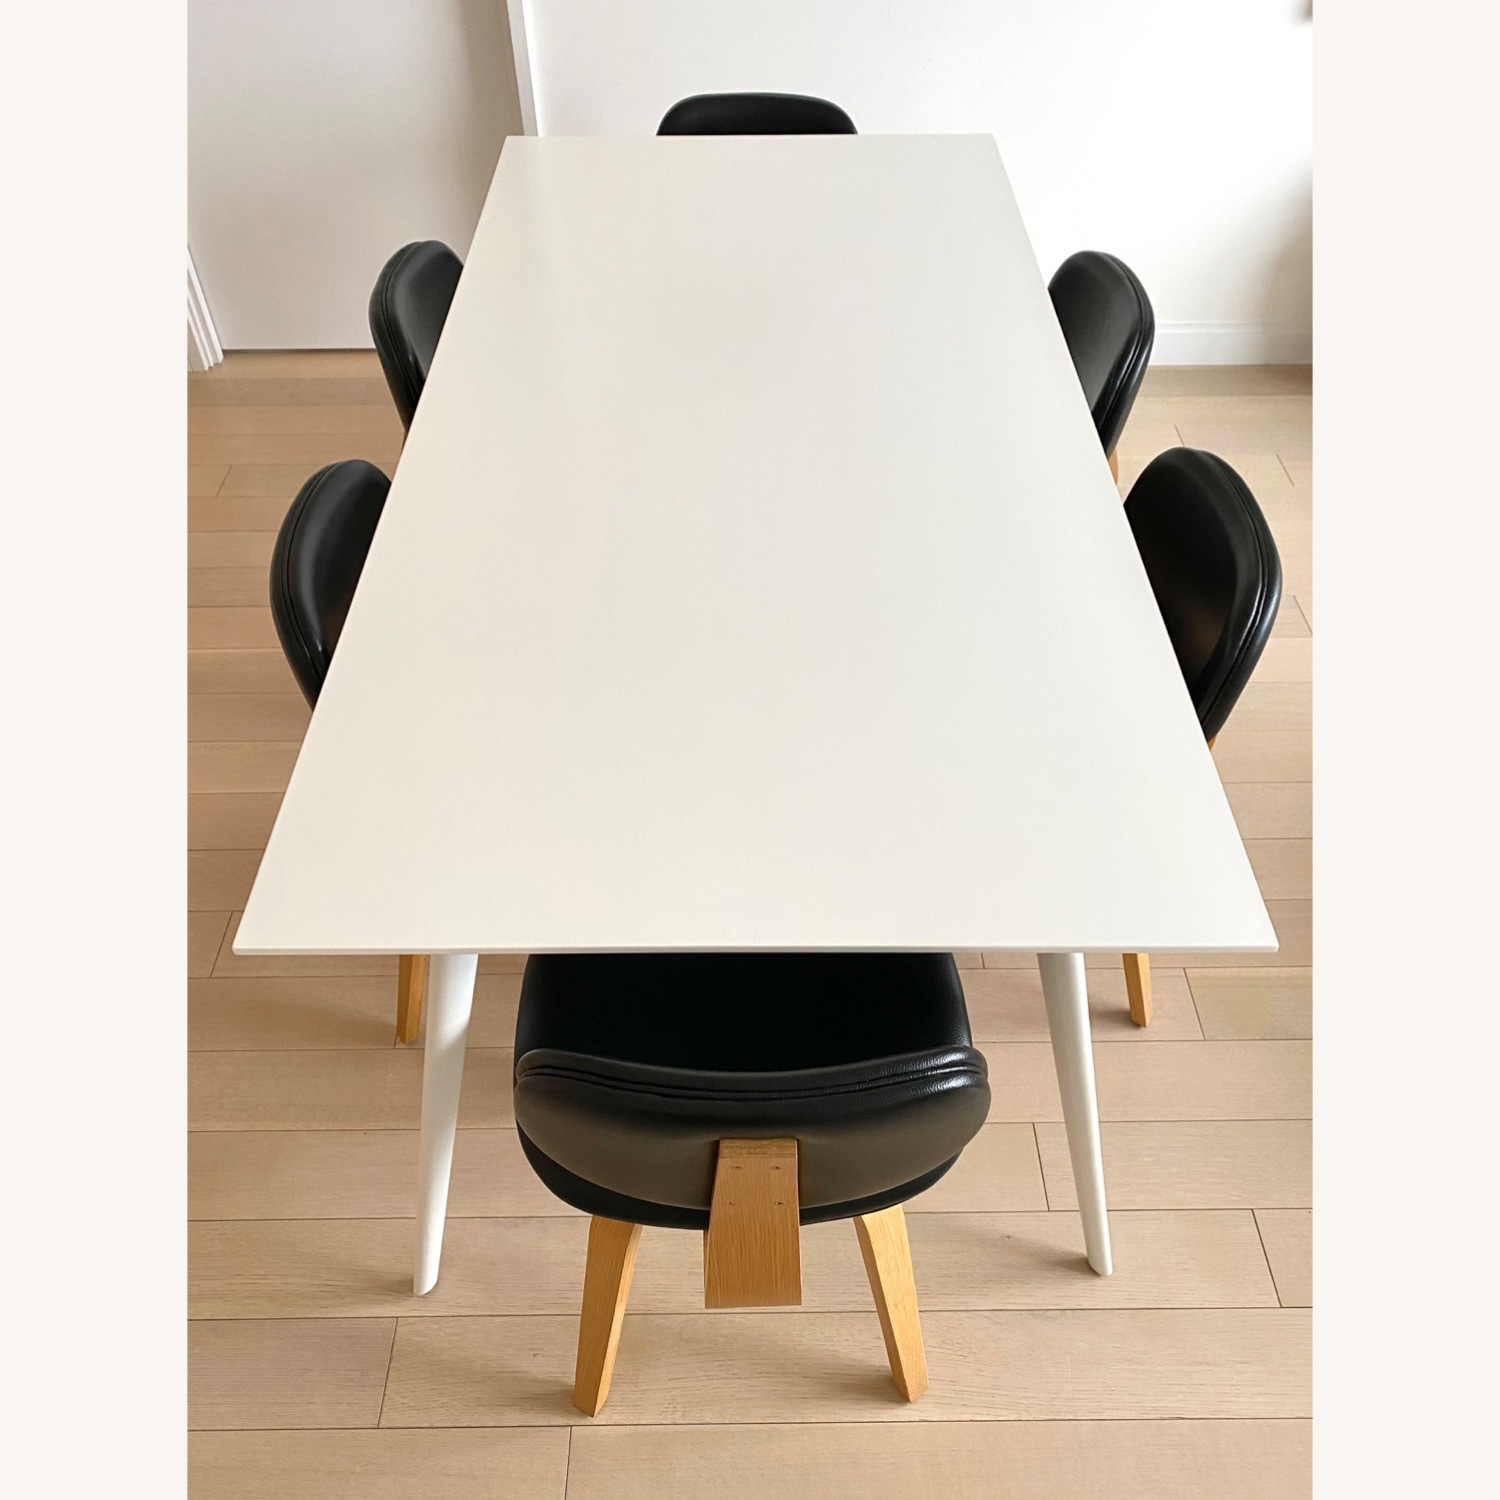 ABC Home White Modern Dining Table - image-2